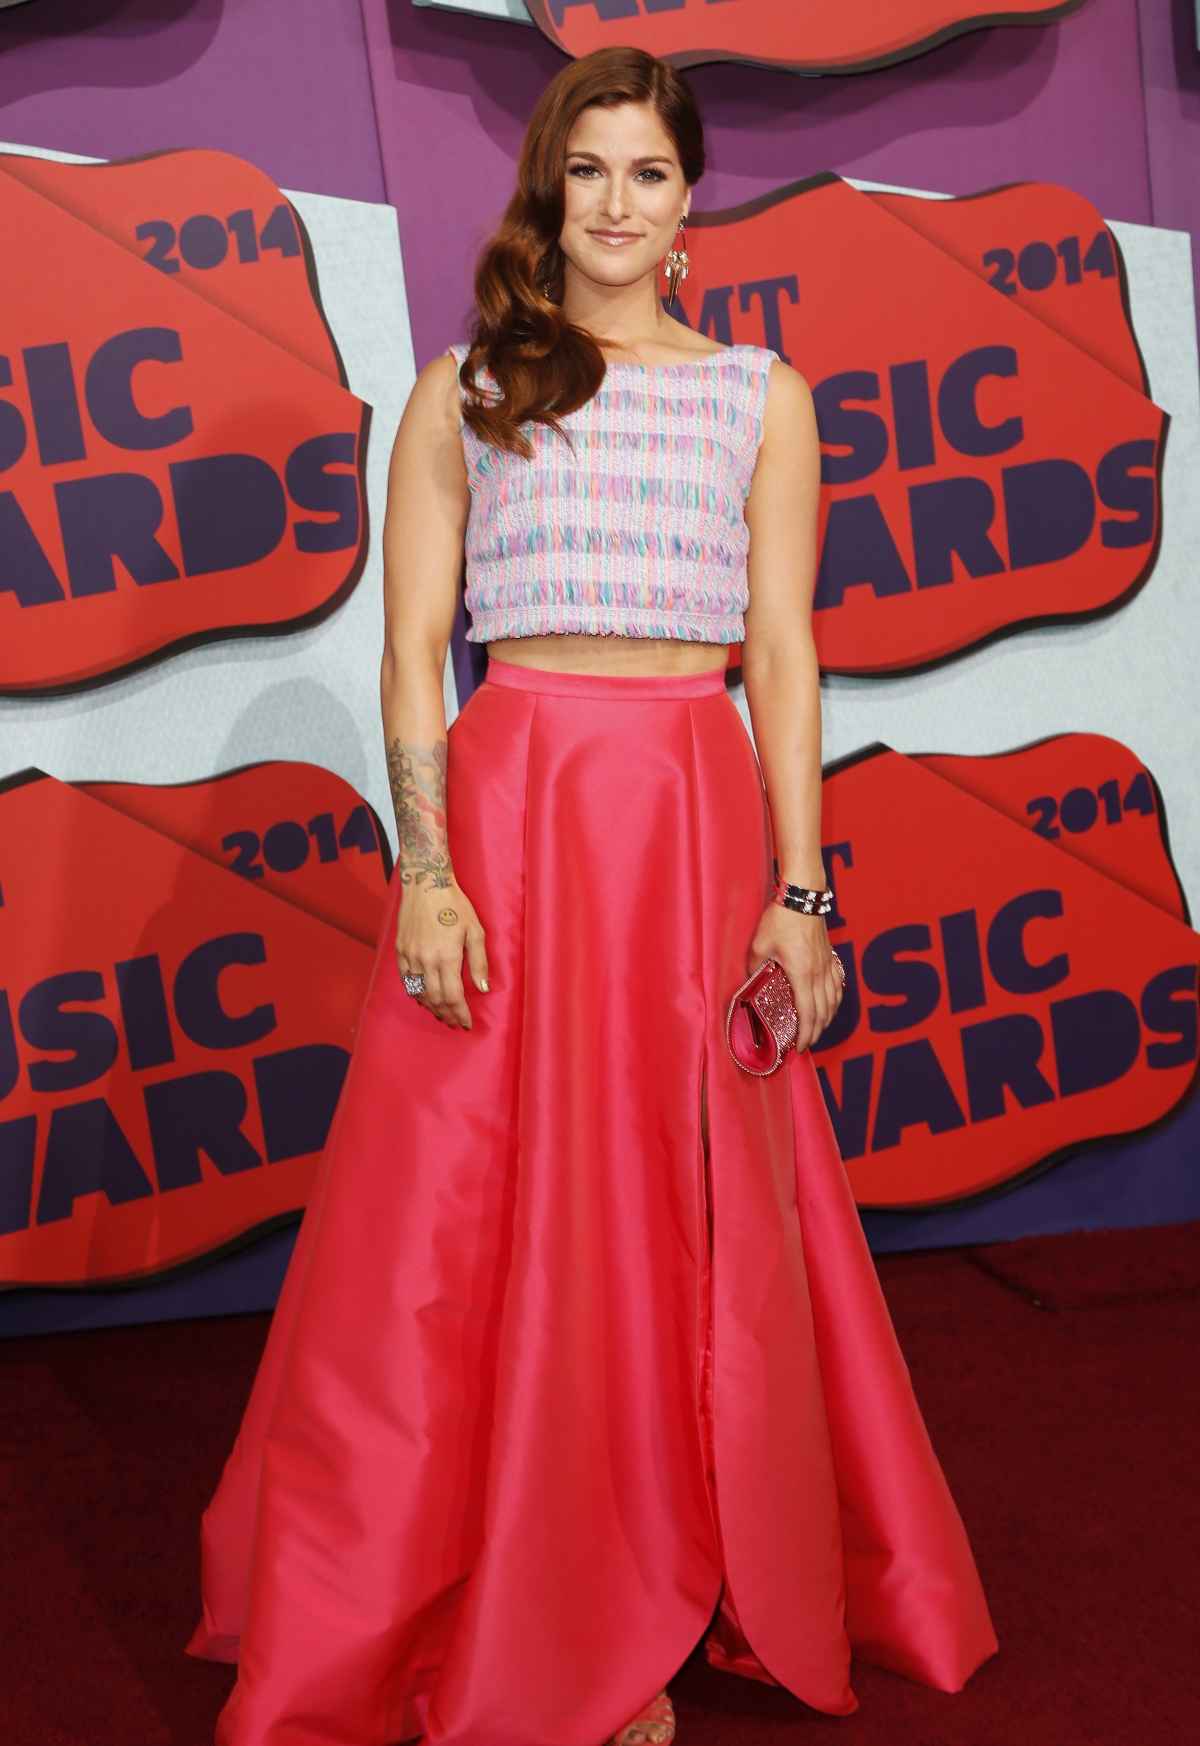 Musician Cassadee Pope arrives at the 2014 CMT Music Awards in Nashville, Tennessee June 4, 2014.